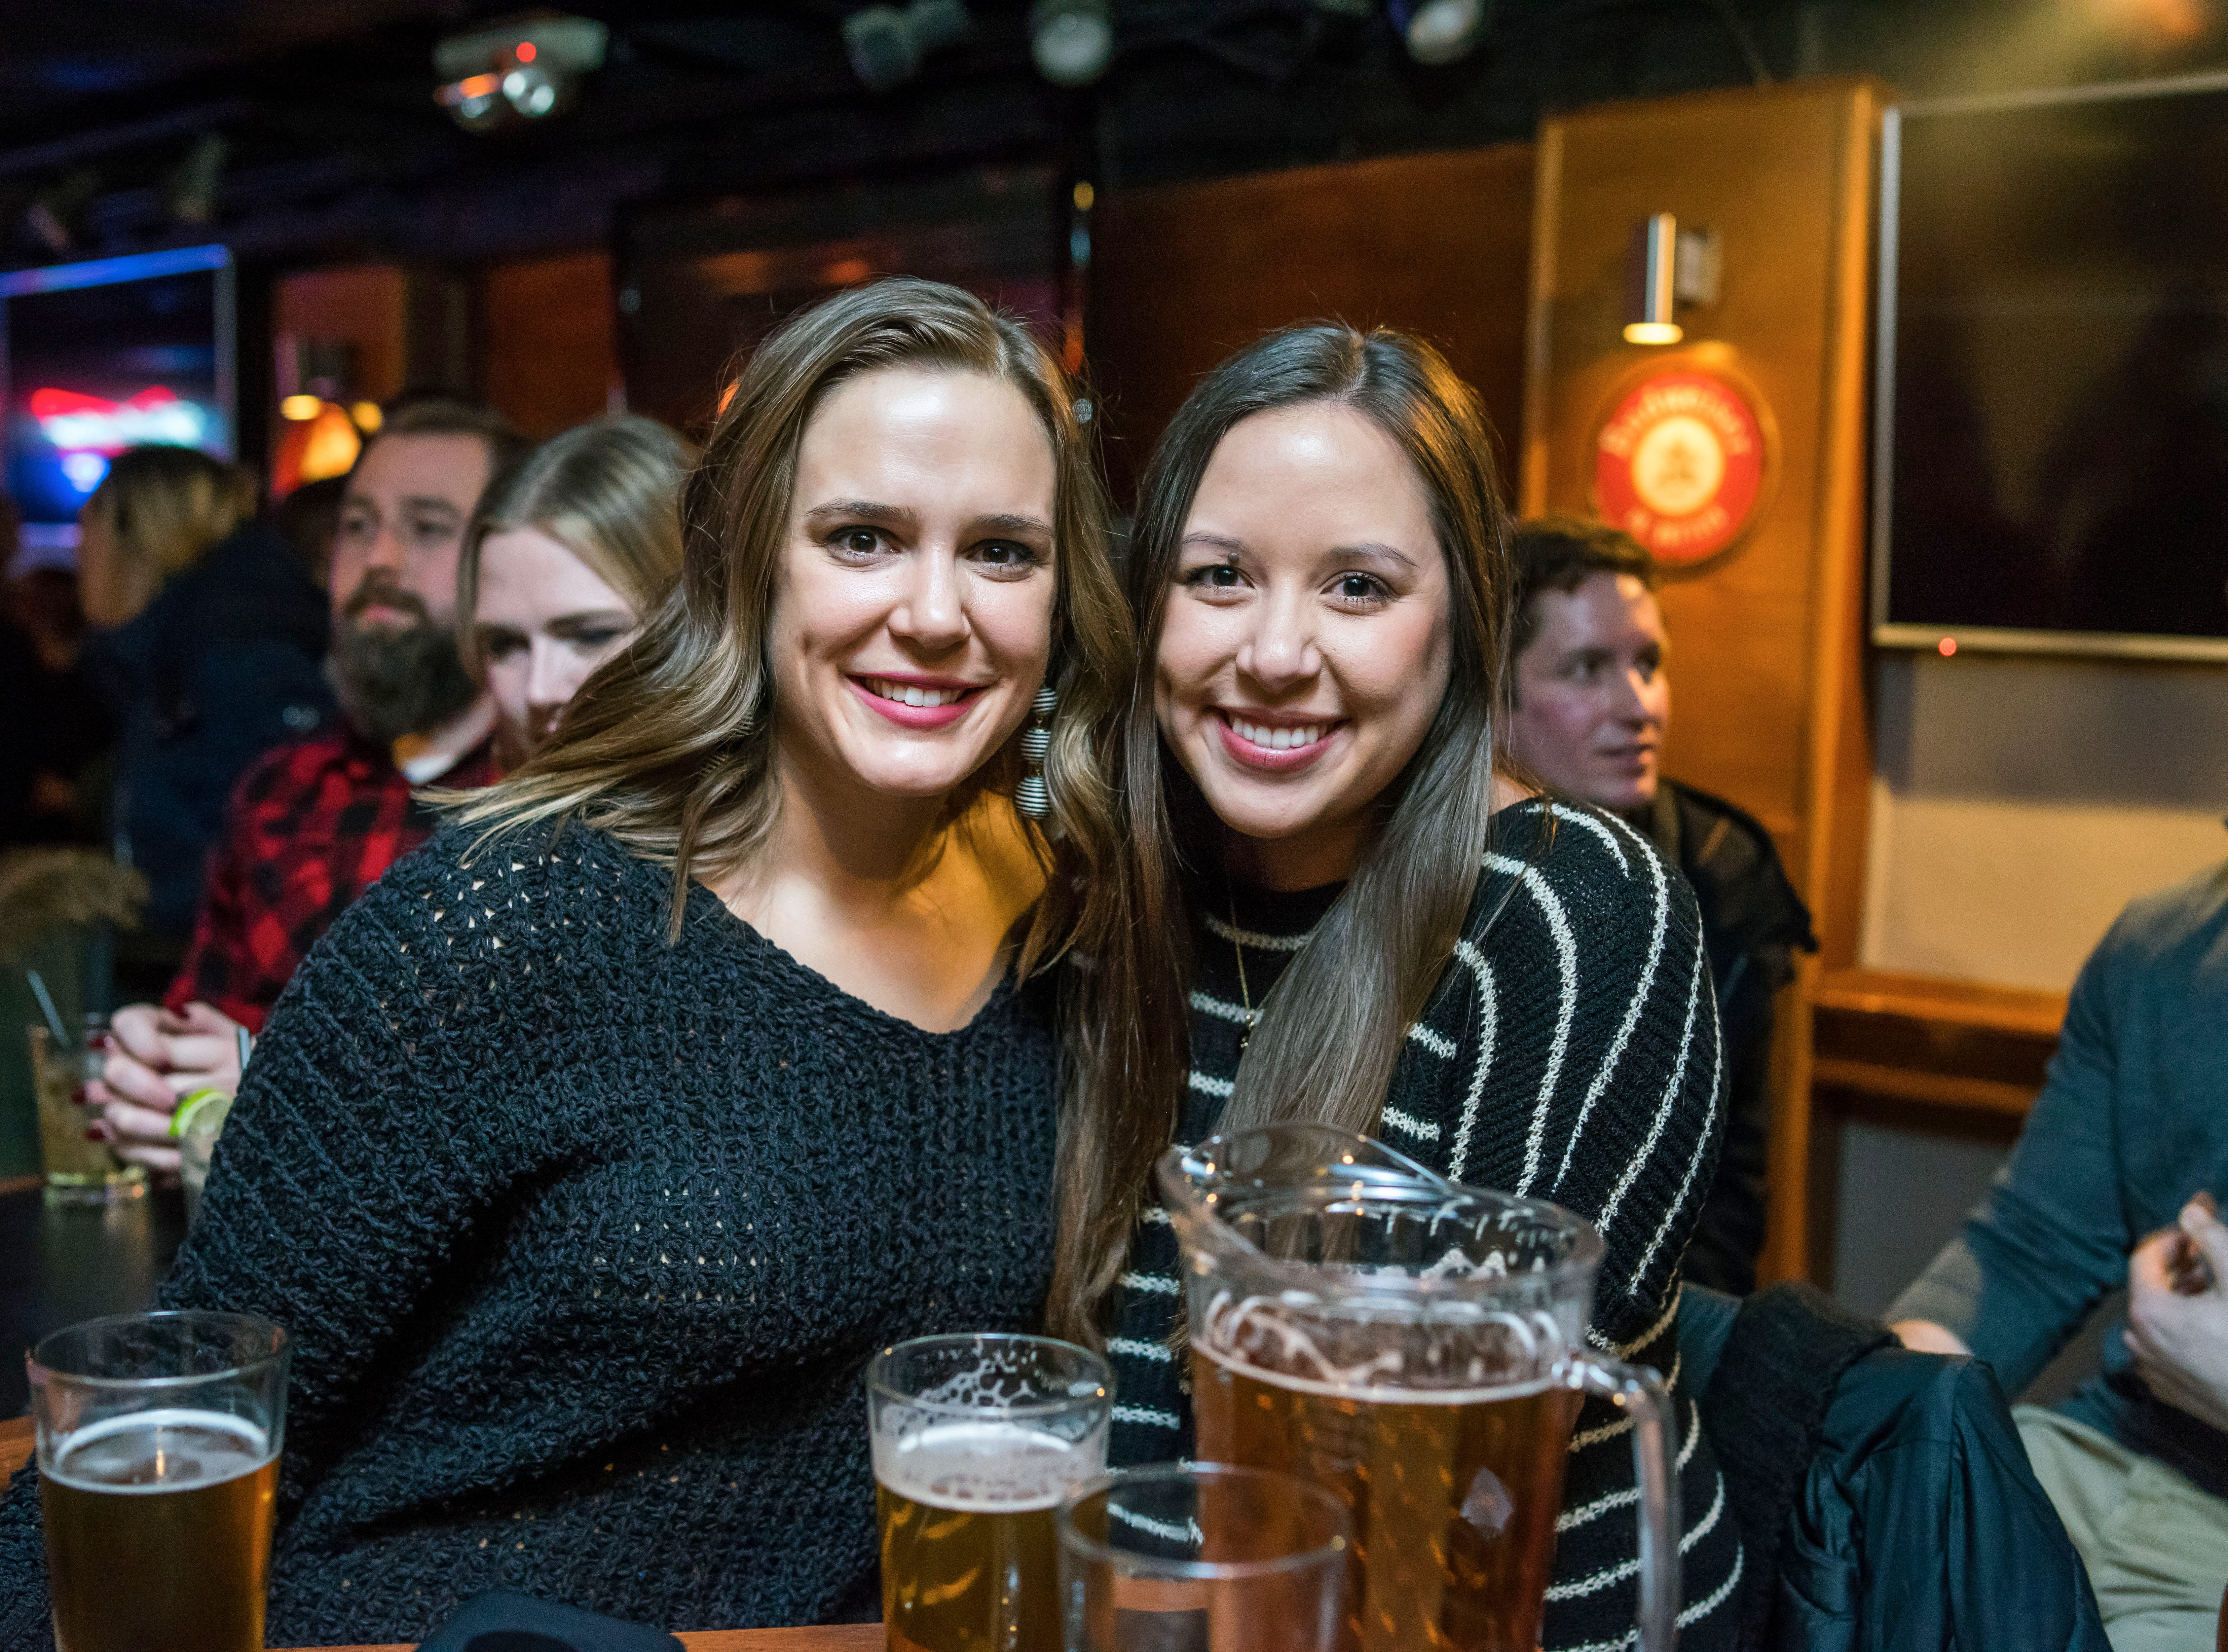 Zannie Thomas-Peckumn, 27, Sam Stonehocker, 27, both of Des Moines, having a great time, Friday, Dec. 21, at the Bomb Shelter Comedy Showcase, hosted by the Beechwood.